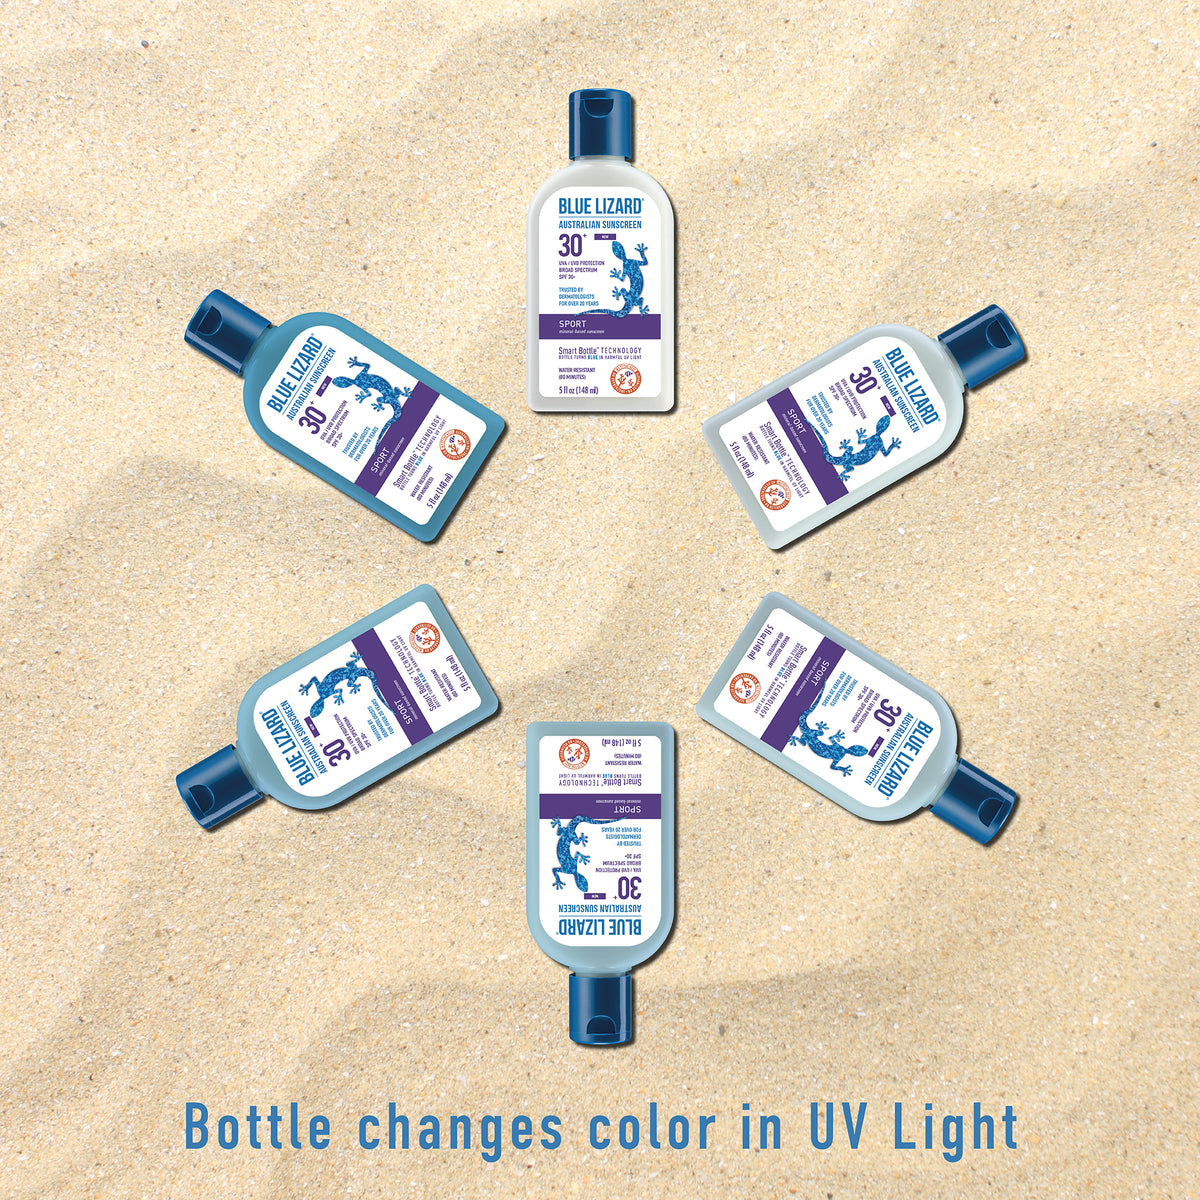 Bottle changes color in UV light